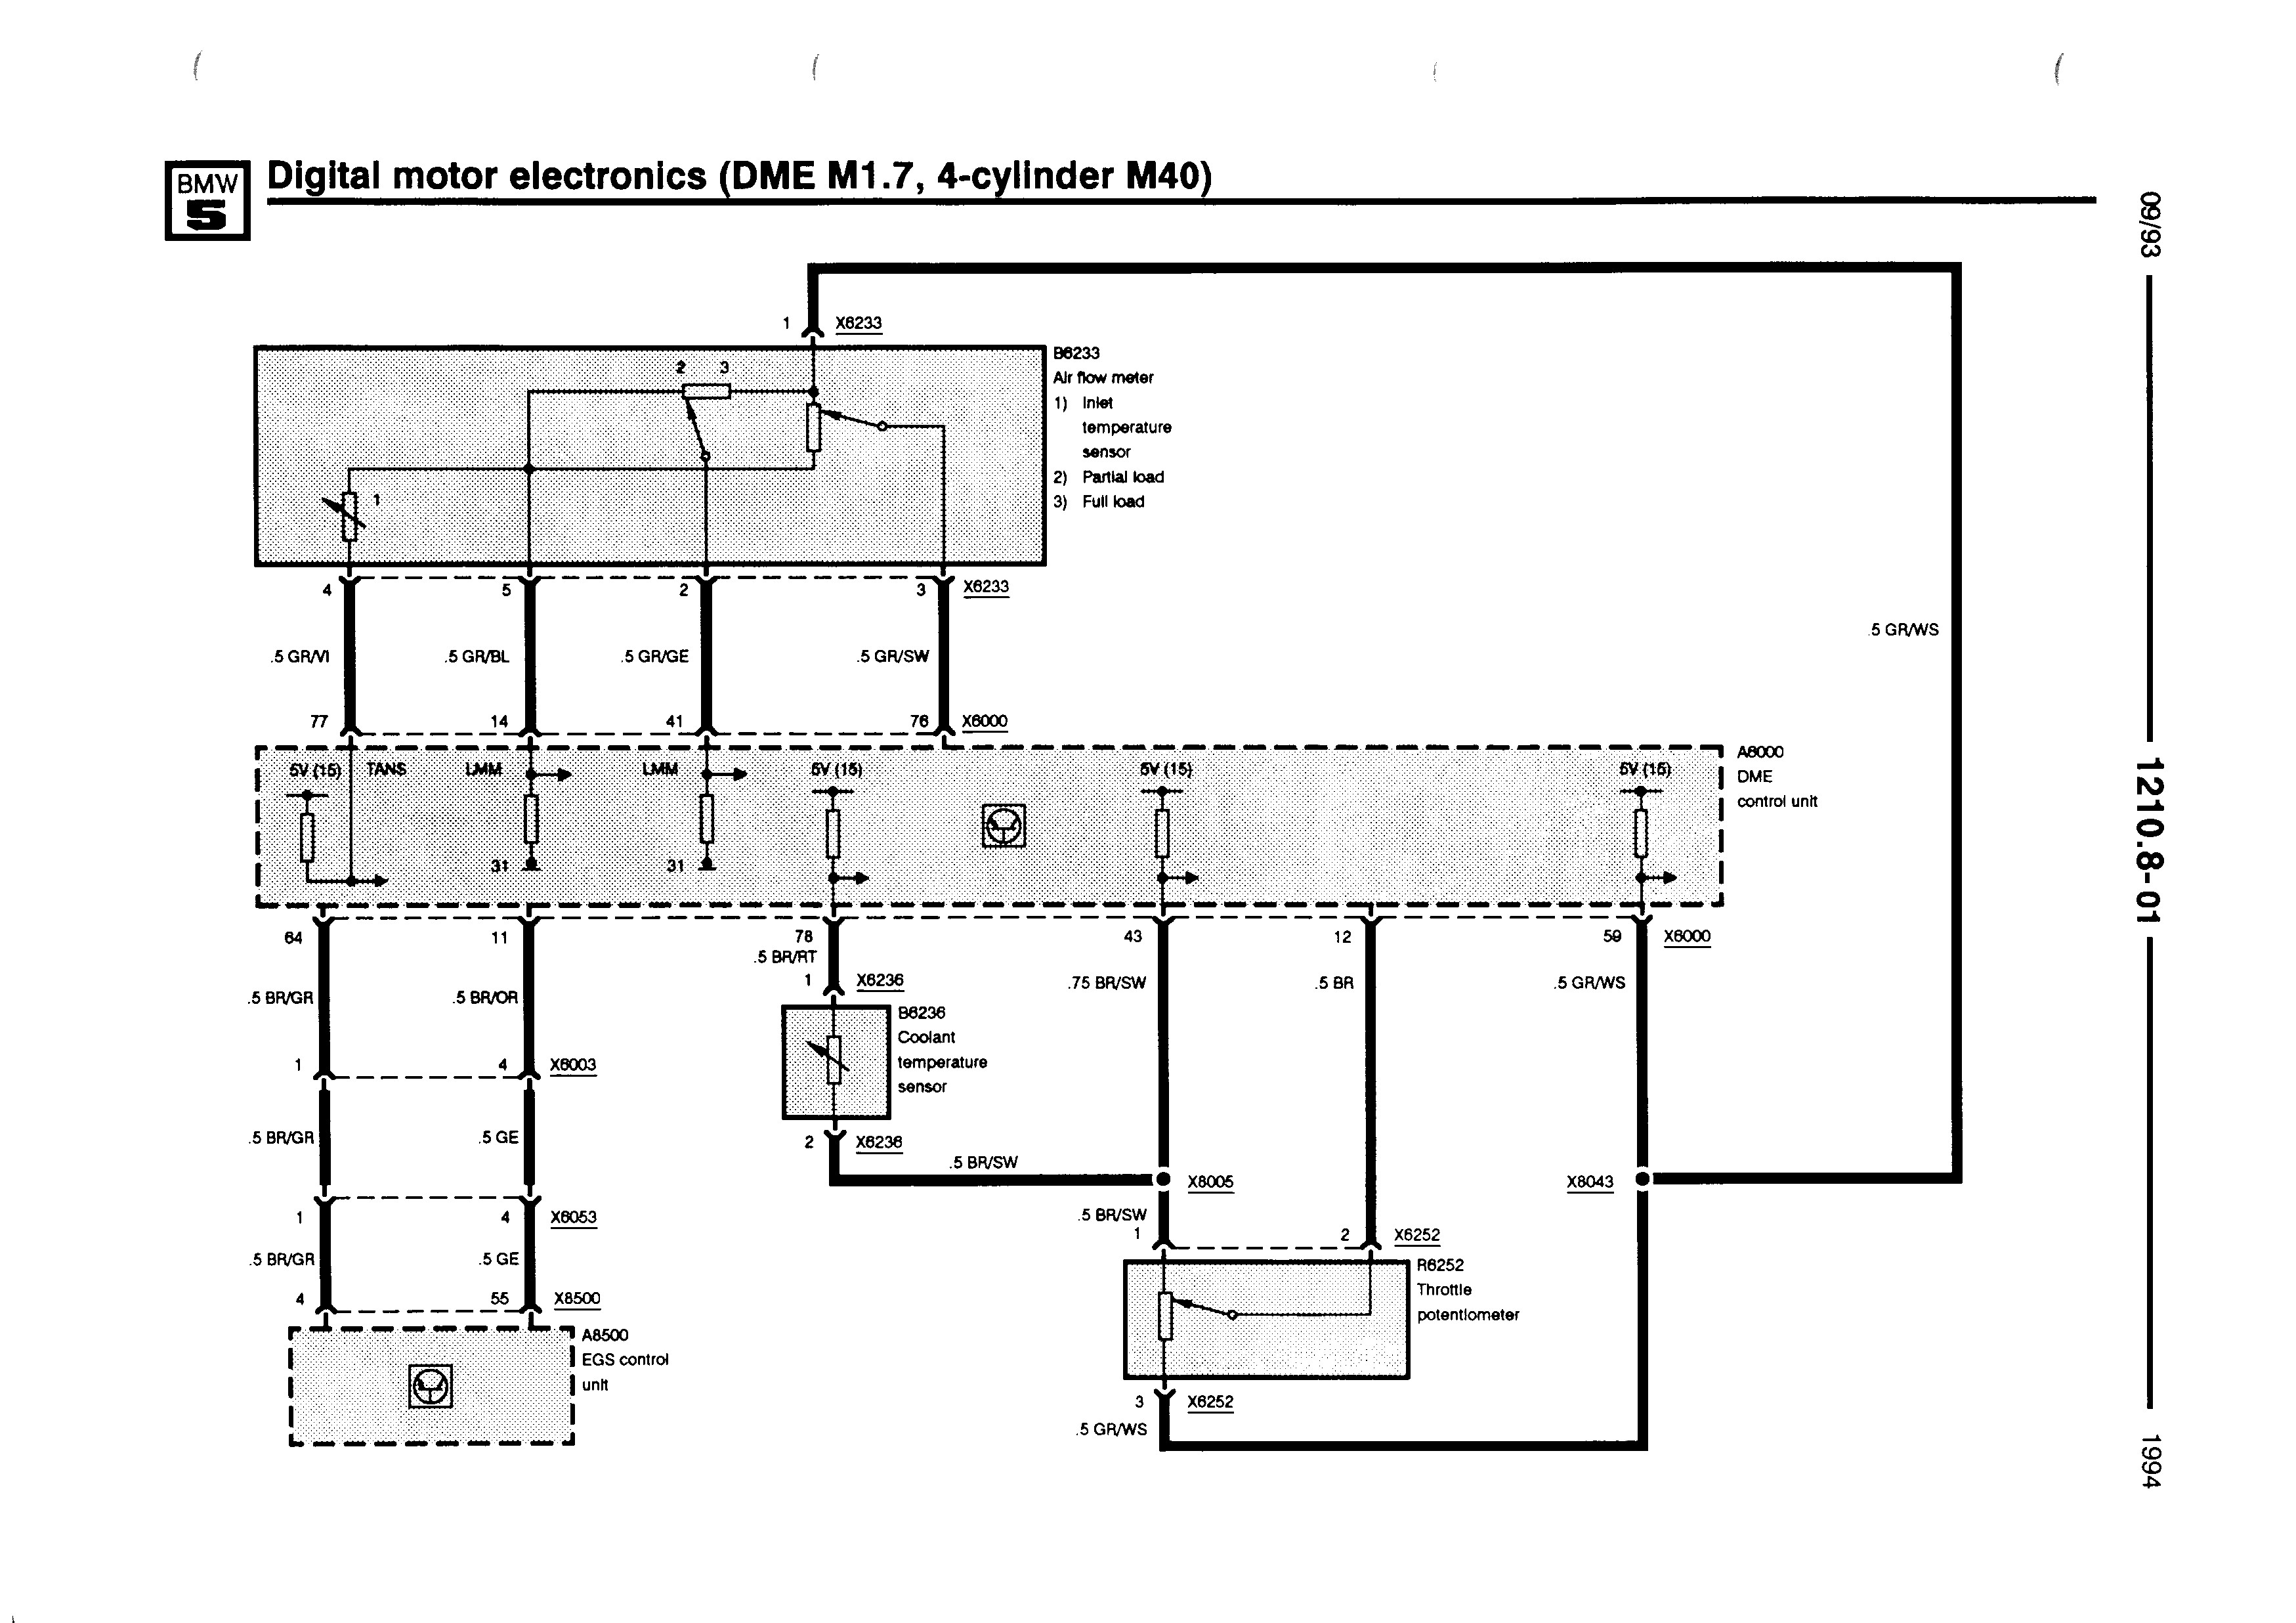 e46 light control module wiring diagram